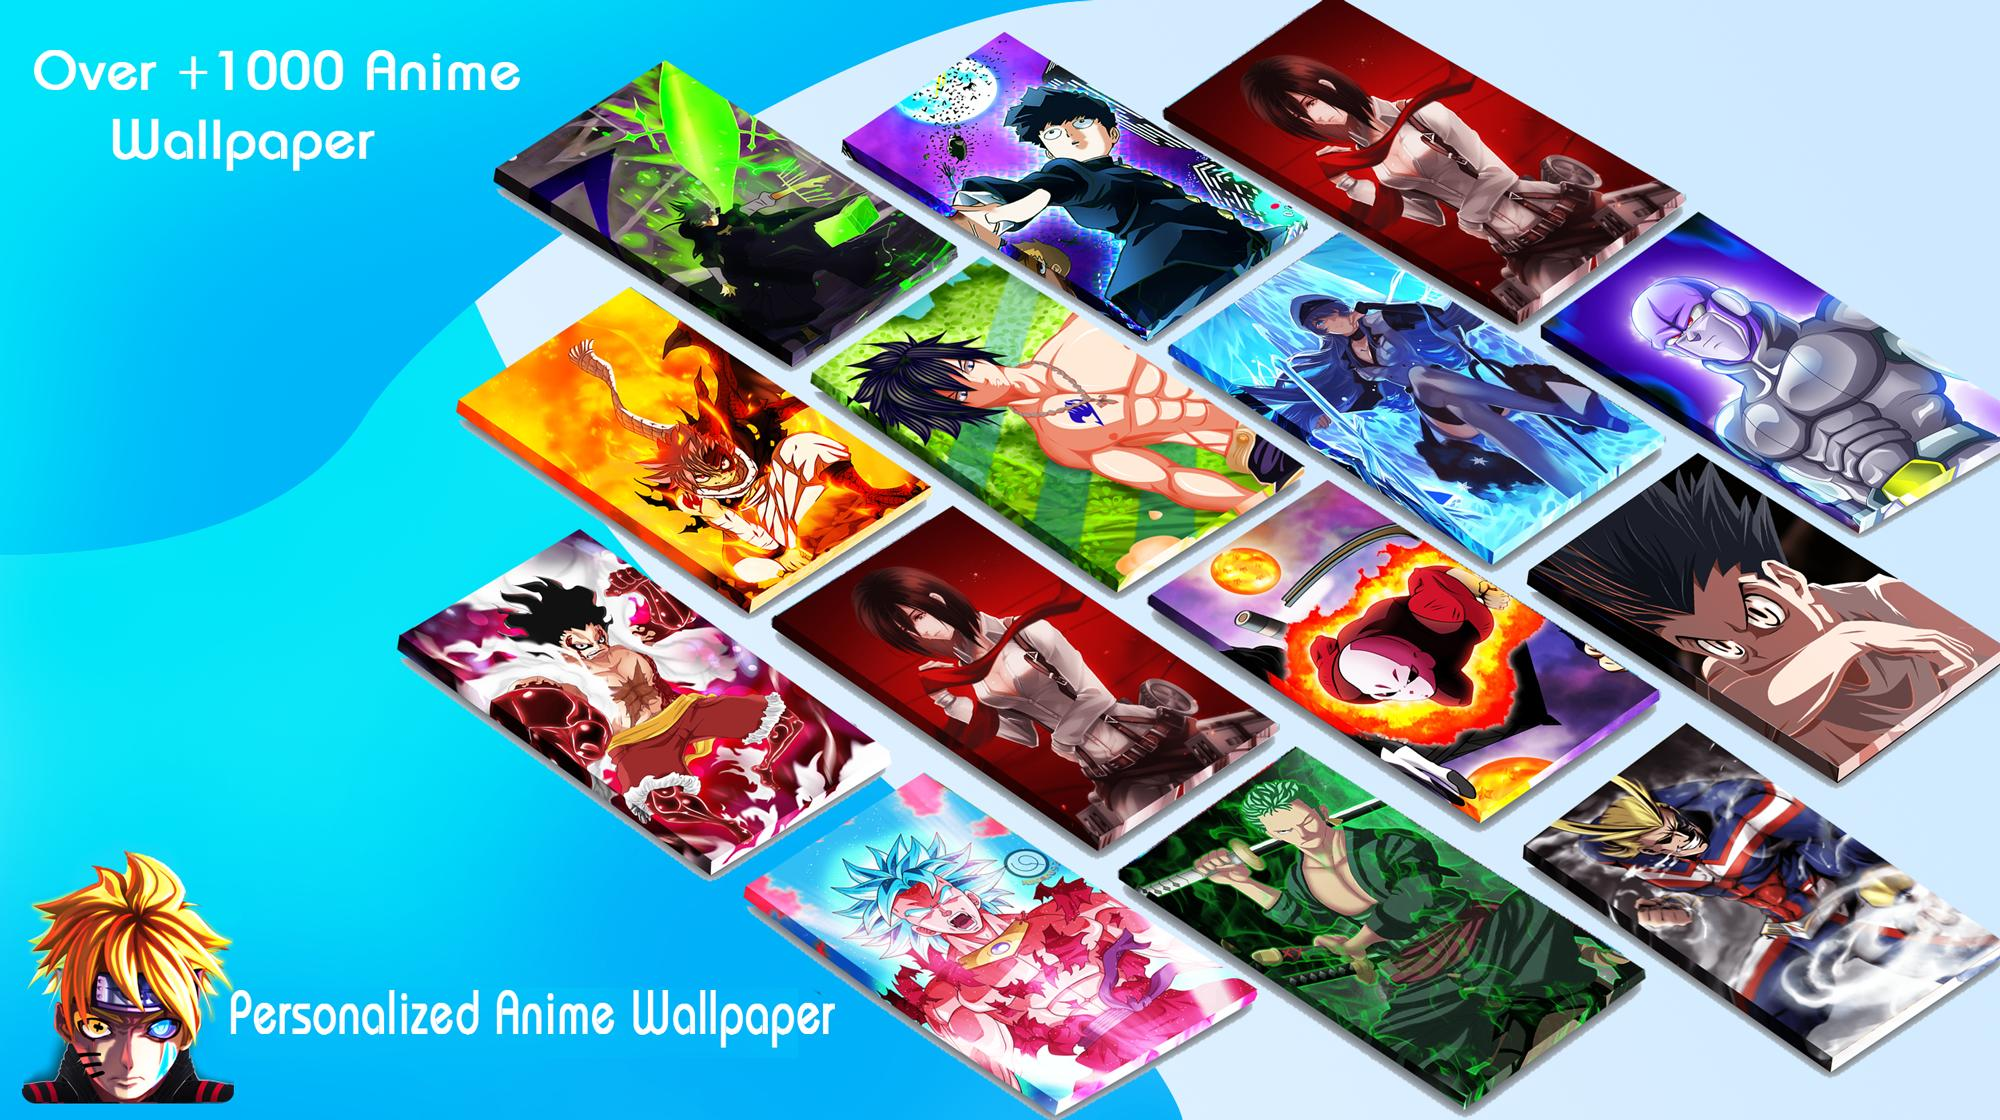 Anime wallpaper 2020 for Android   APK Download 2000x1120